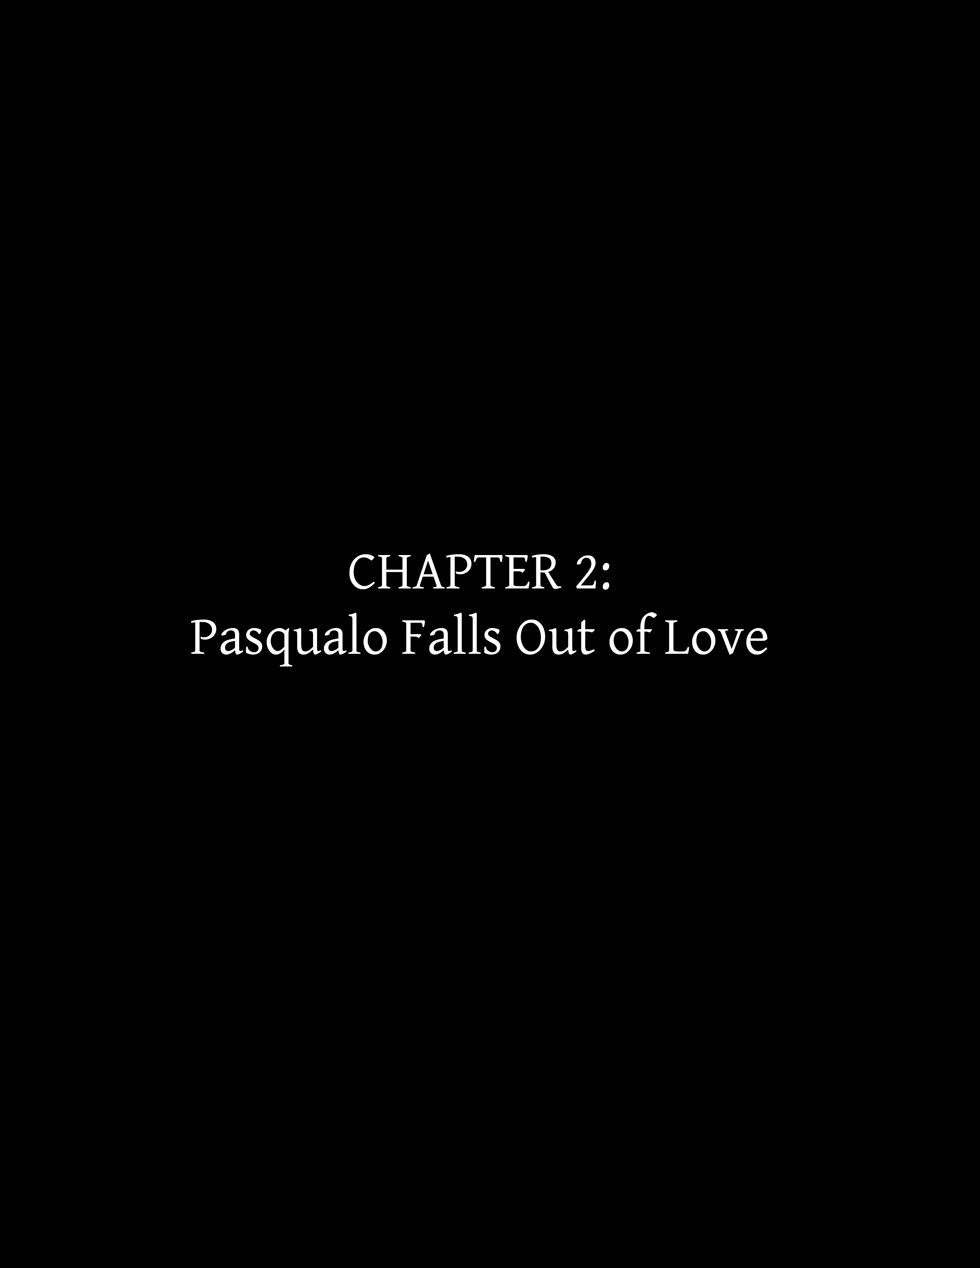 Chapter 2: Pasqualo Falls Out of Love